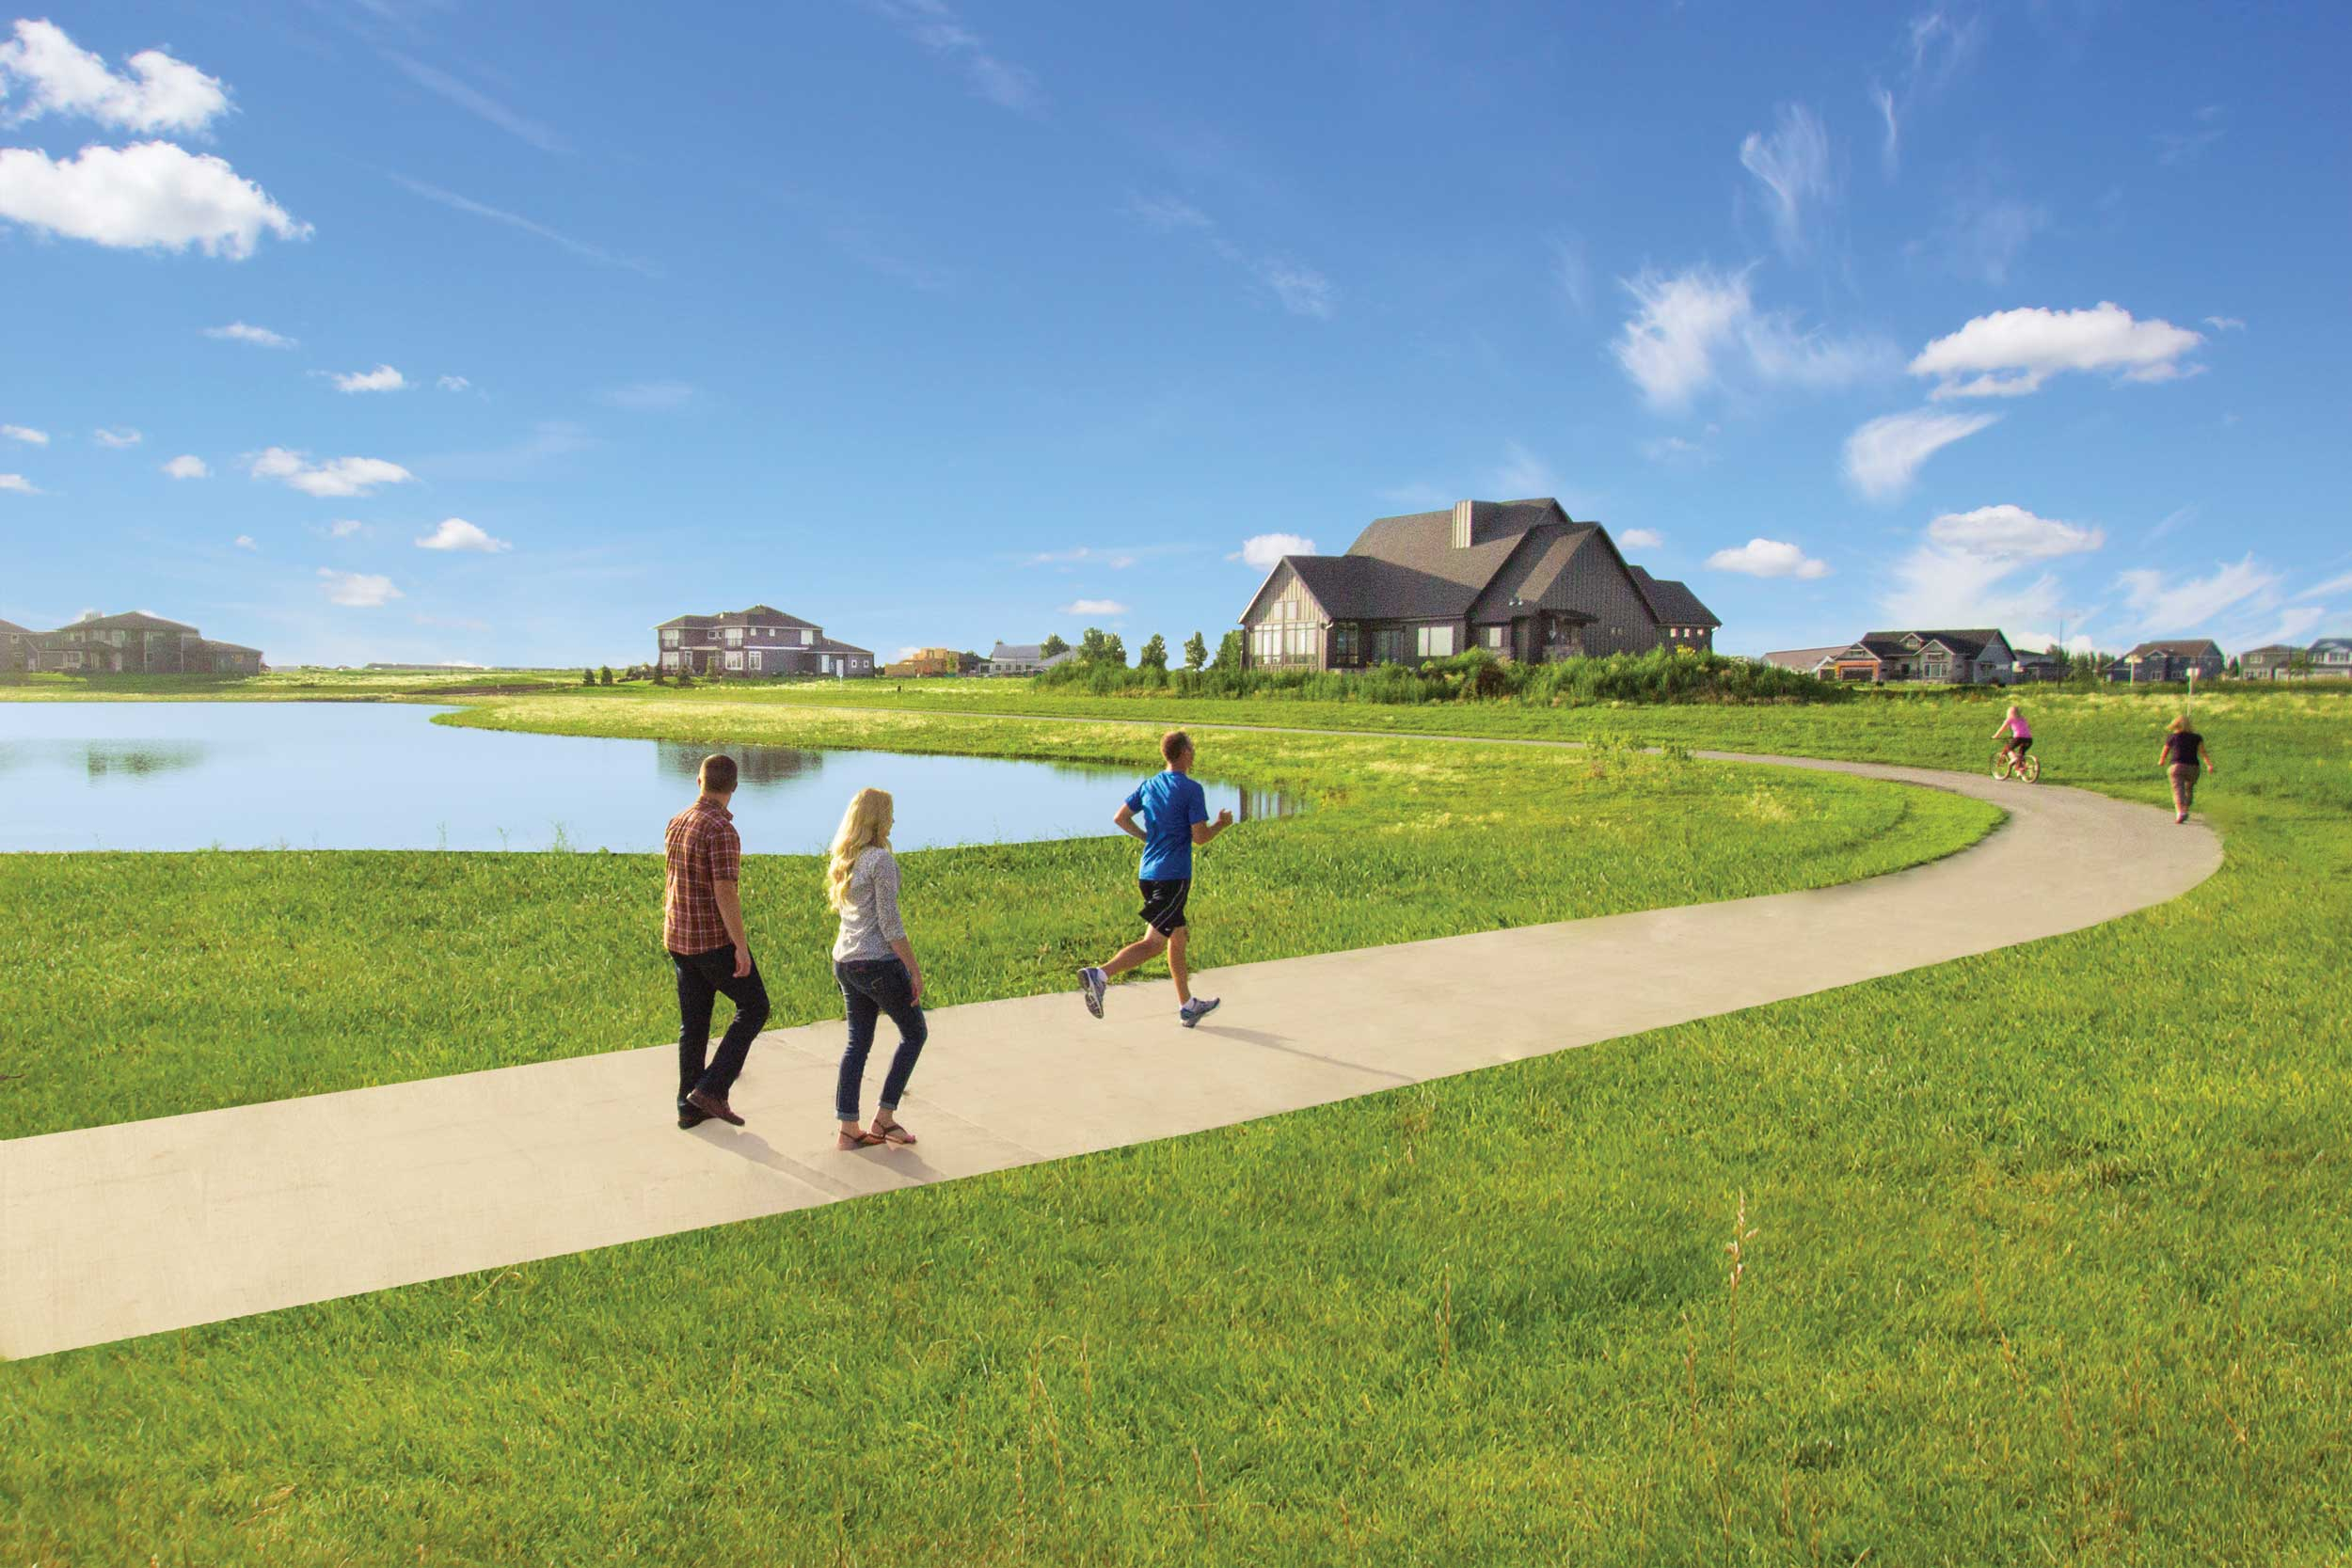 Recreational Trails - These trails wrap around a beautiful wildlife pond that opens up into Osgood Golf Course. There are two trail access pocket parks, as well, which are managed by the Homeowners Association (HOA).